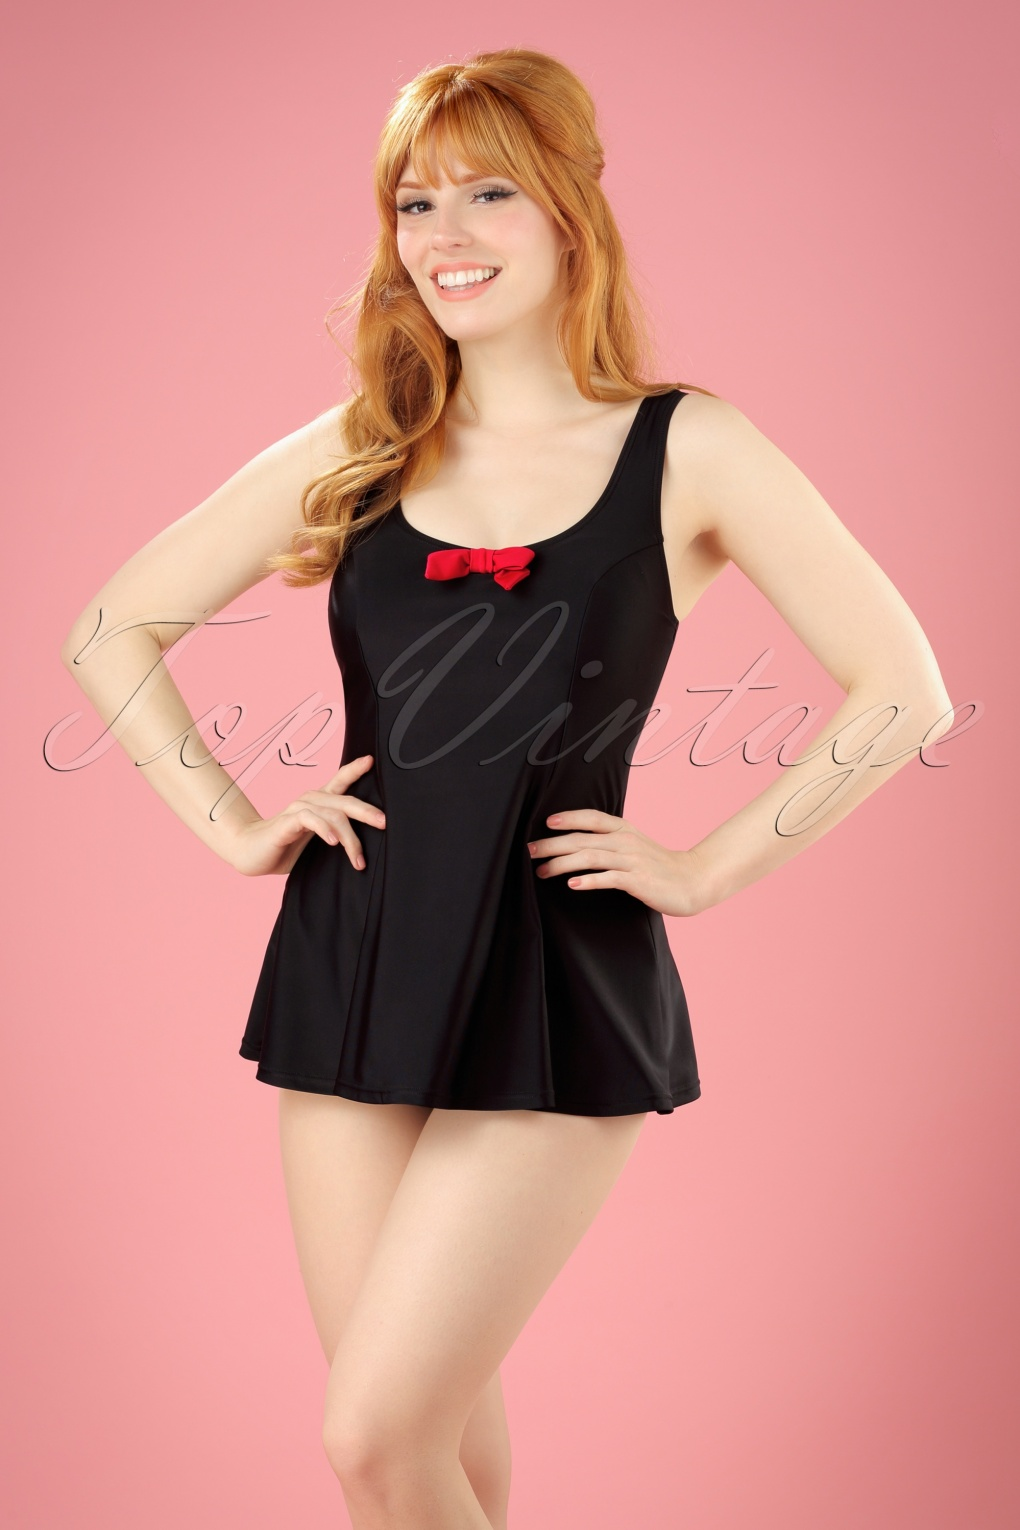 Vintage Inspired Retro Swimsuits TopVintage Exclusive  50s Shelley Bow Swimsuit in Black and Red £49.58 AT vintagedancer.com